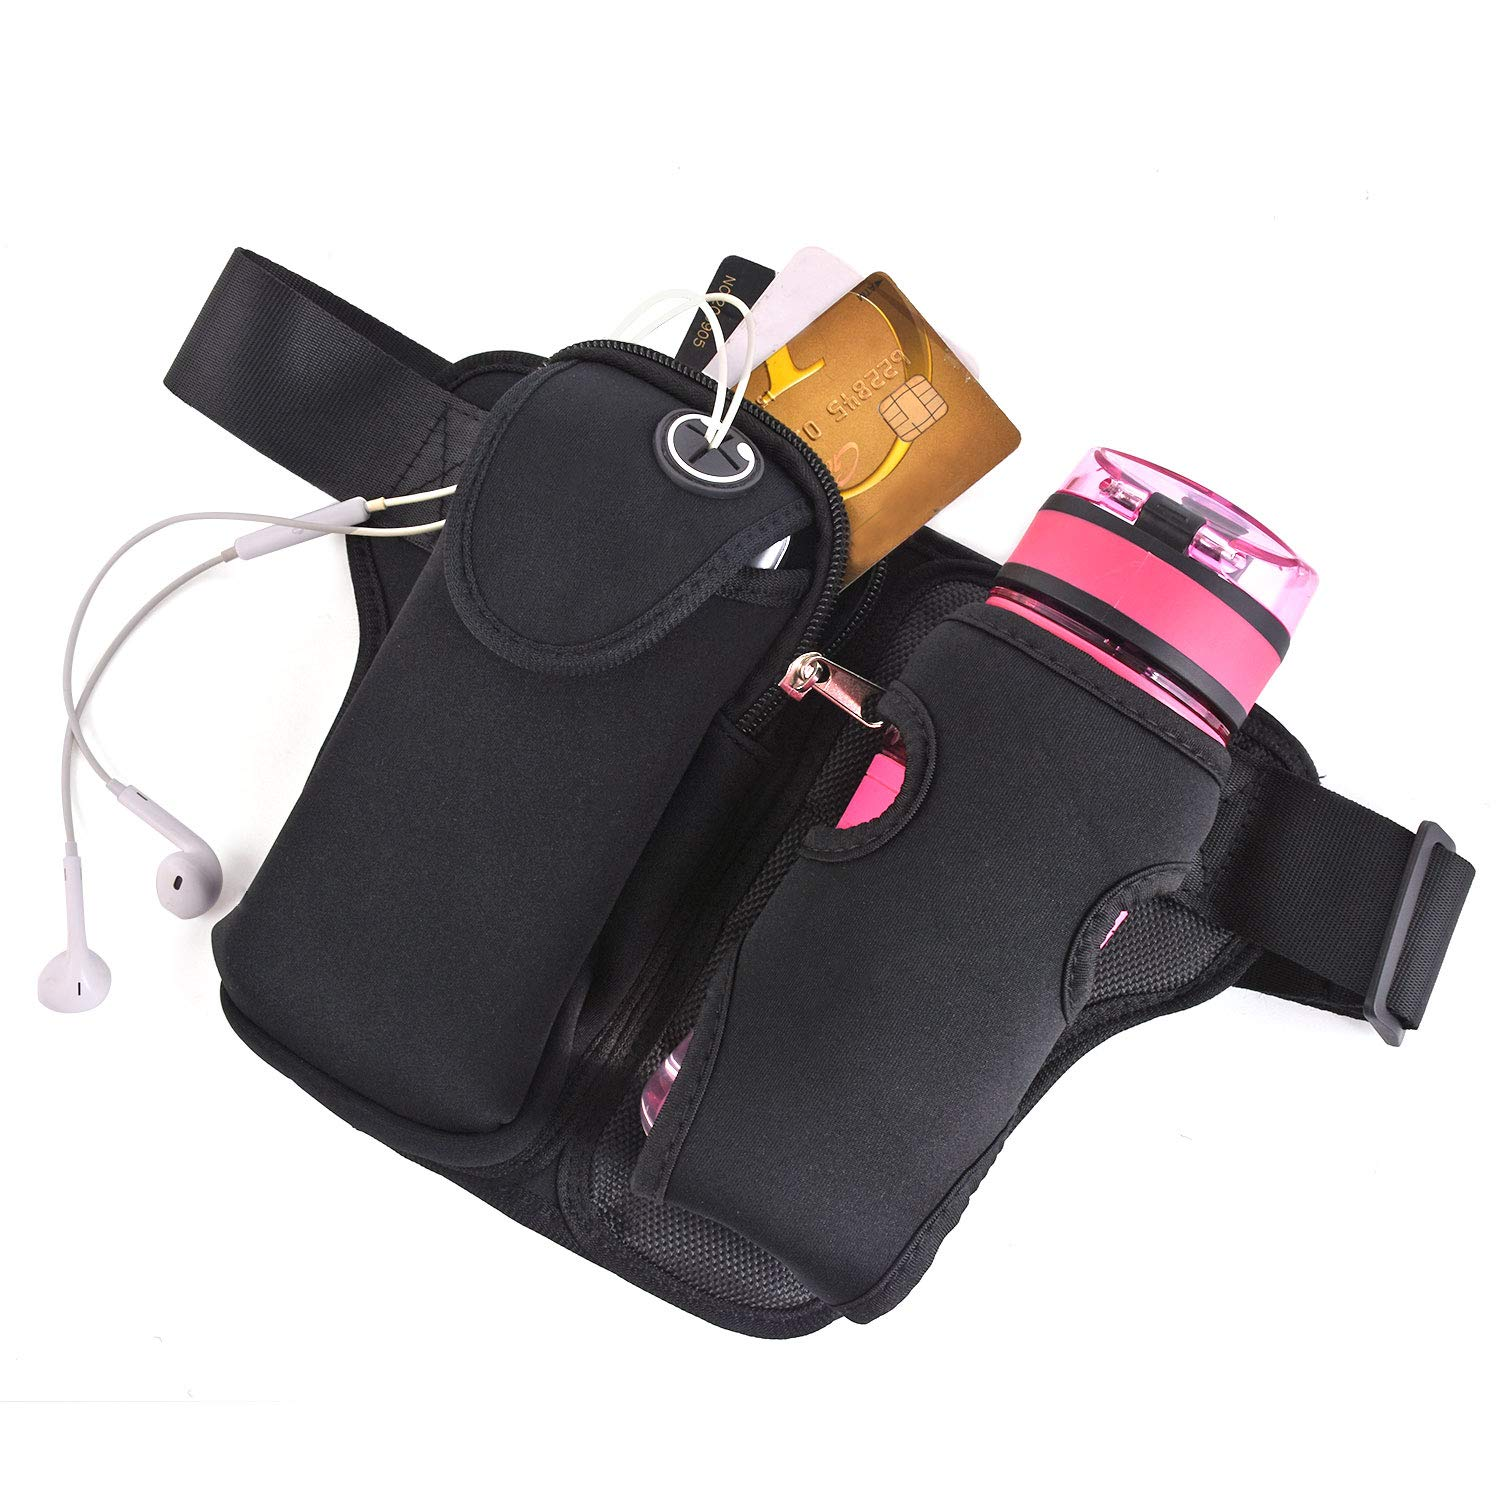 Fanny Pack with Water Bottle Holder for Women Men Hiking Waist Bag Outdoors Travel Dog Walking Adjustable Large Waist Size fit for iPhone 8 Plus X XS 11 Pro and other Smartphones Under 6 inches